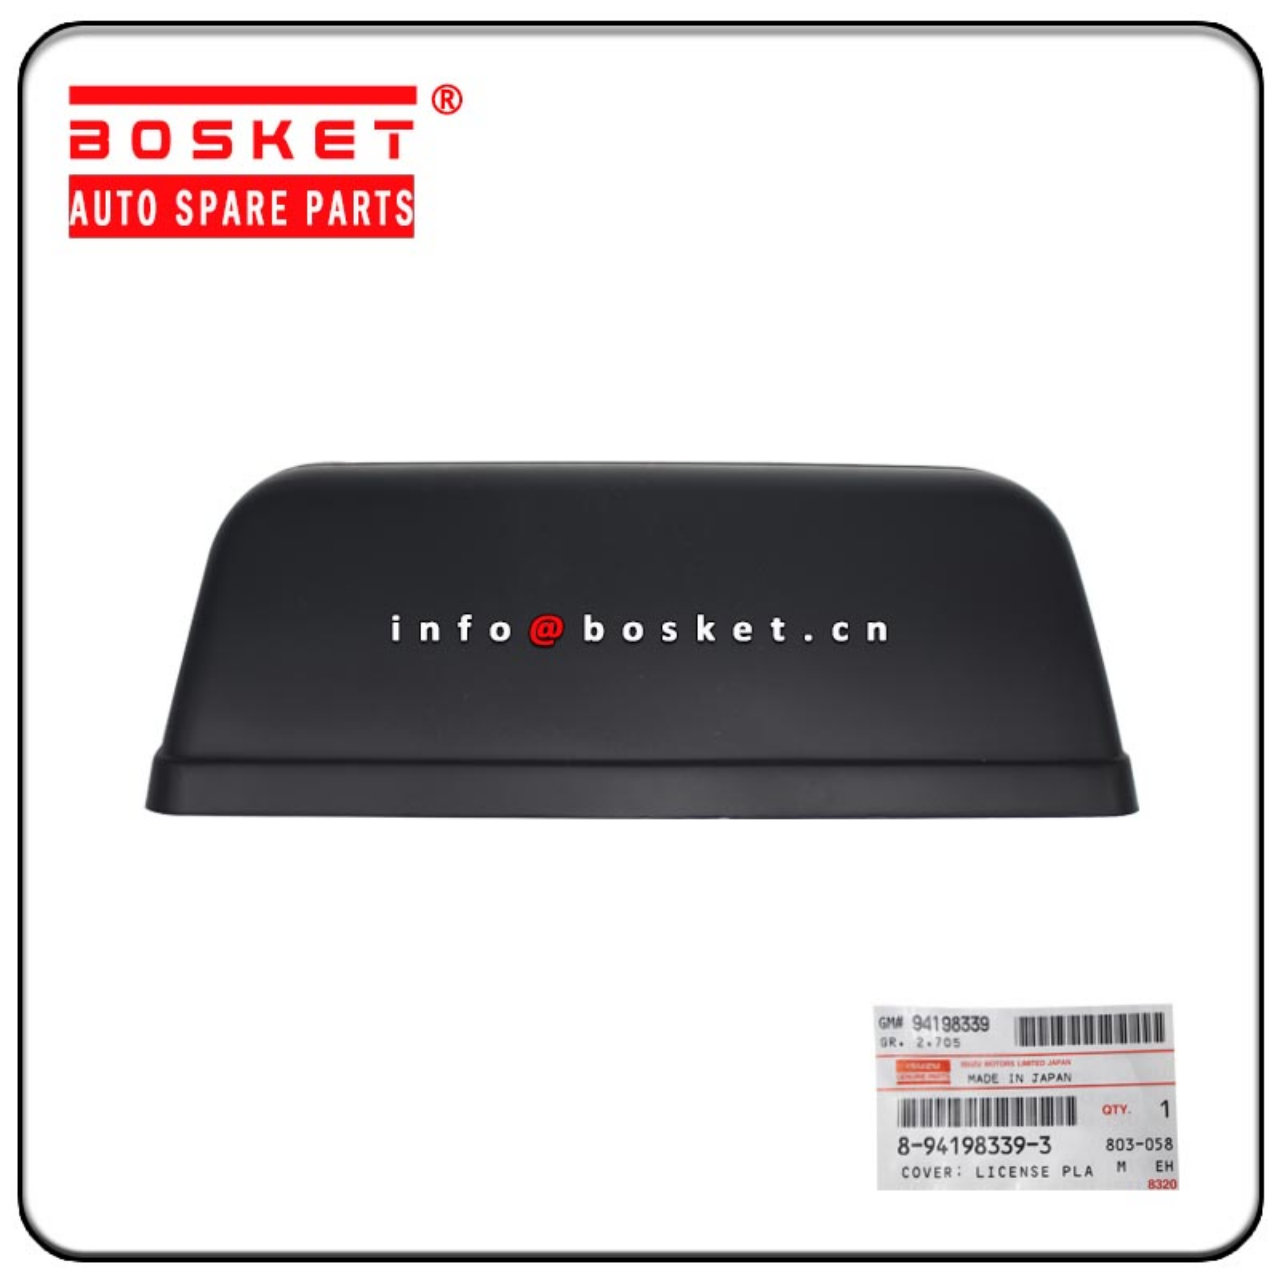 8941983393 8-94198339-3 License Plate Lamp Cover Suitable for ISUZU